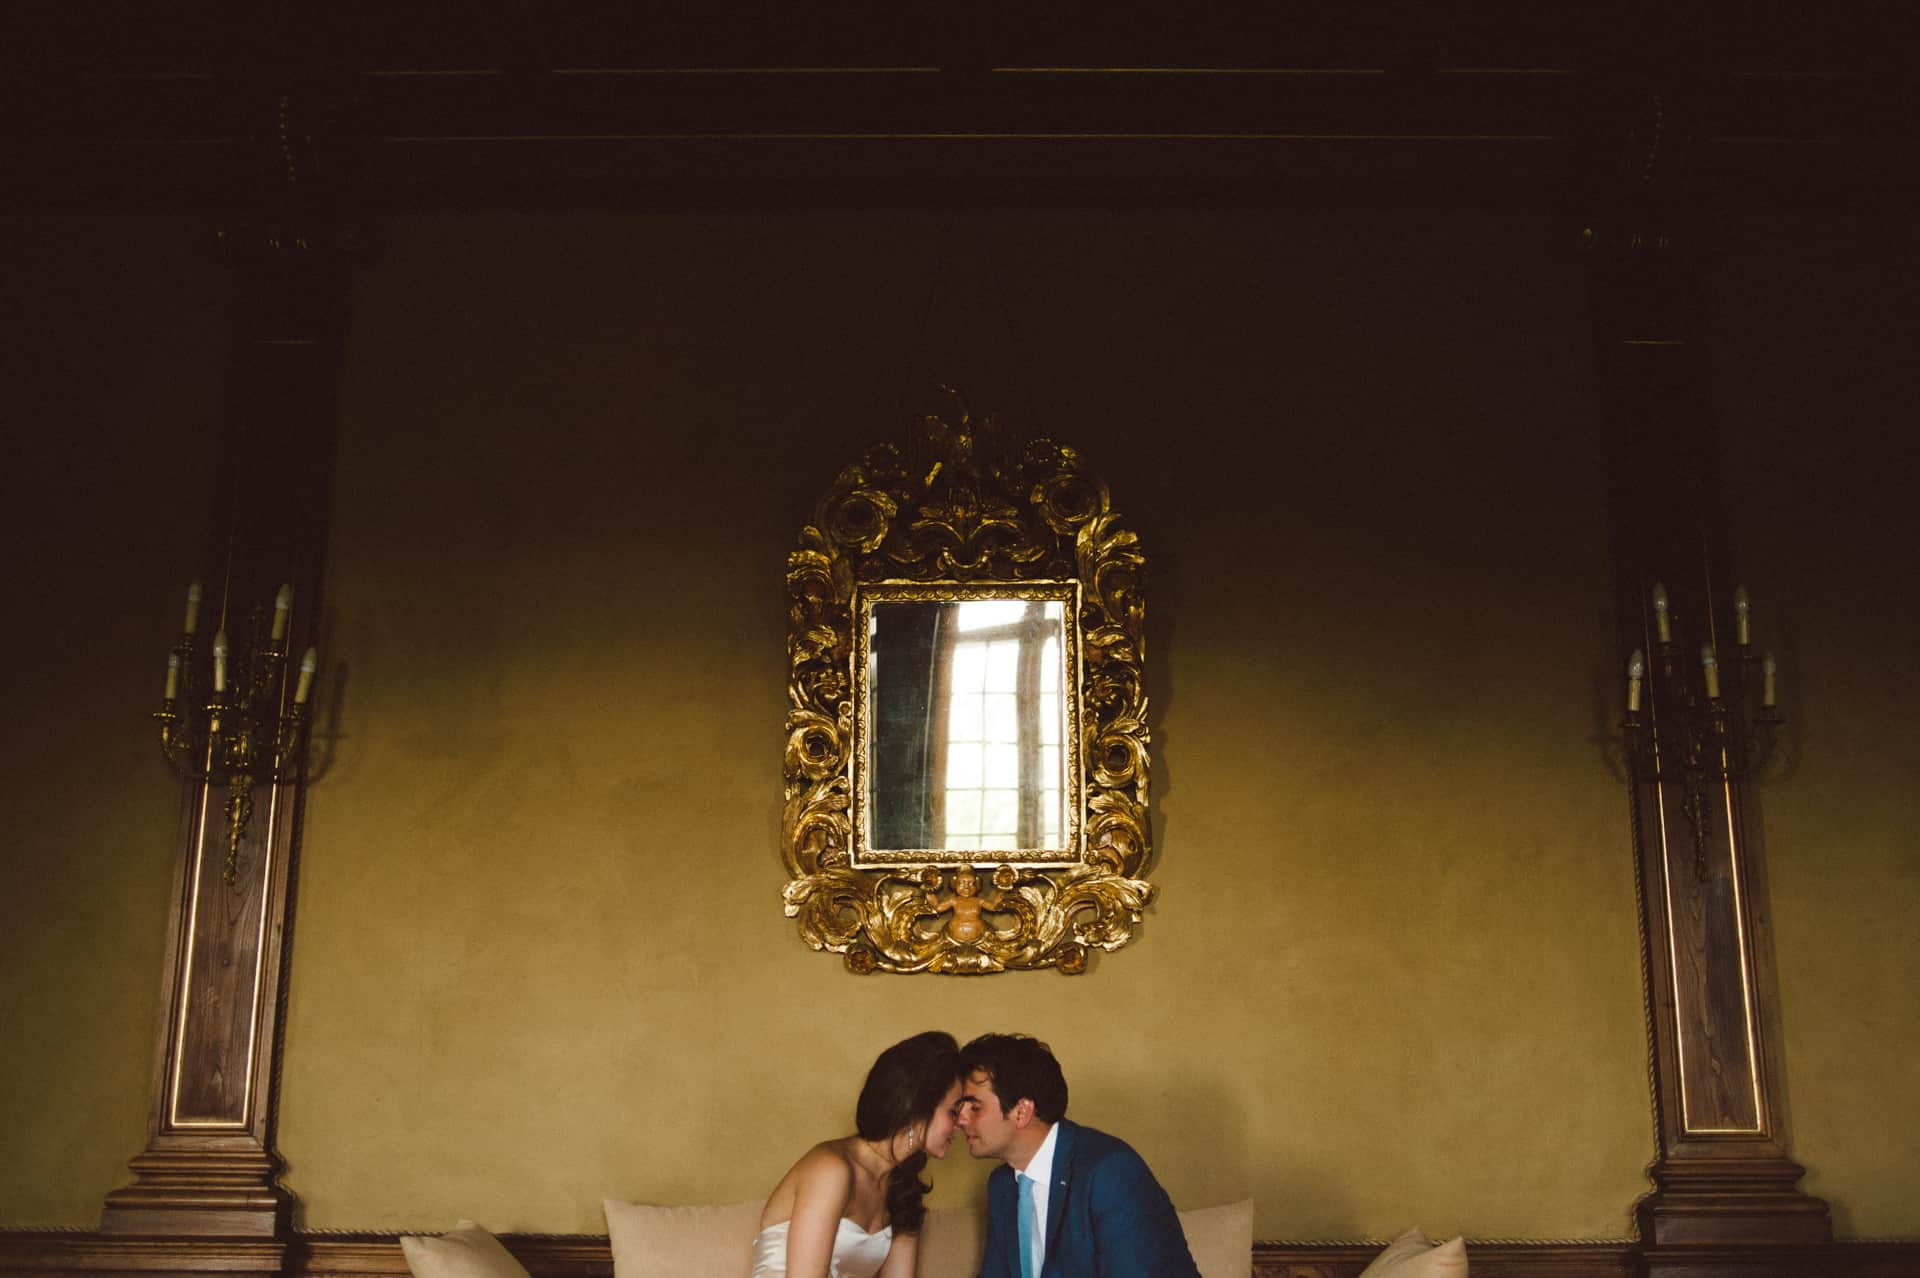 Best wedding images of the year (143 of 316)